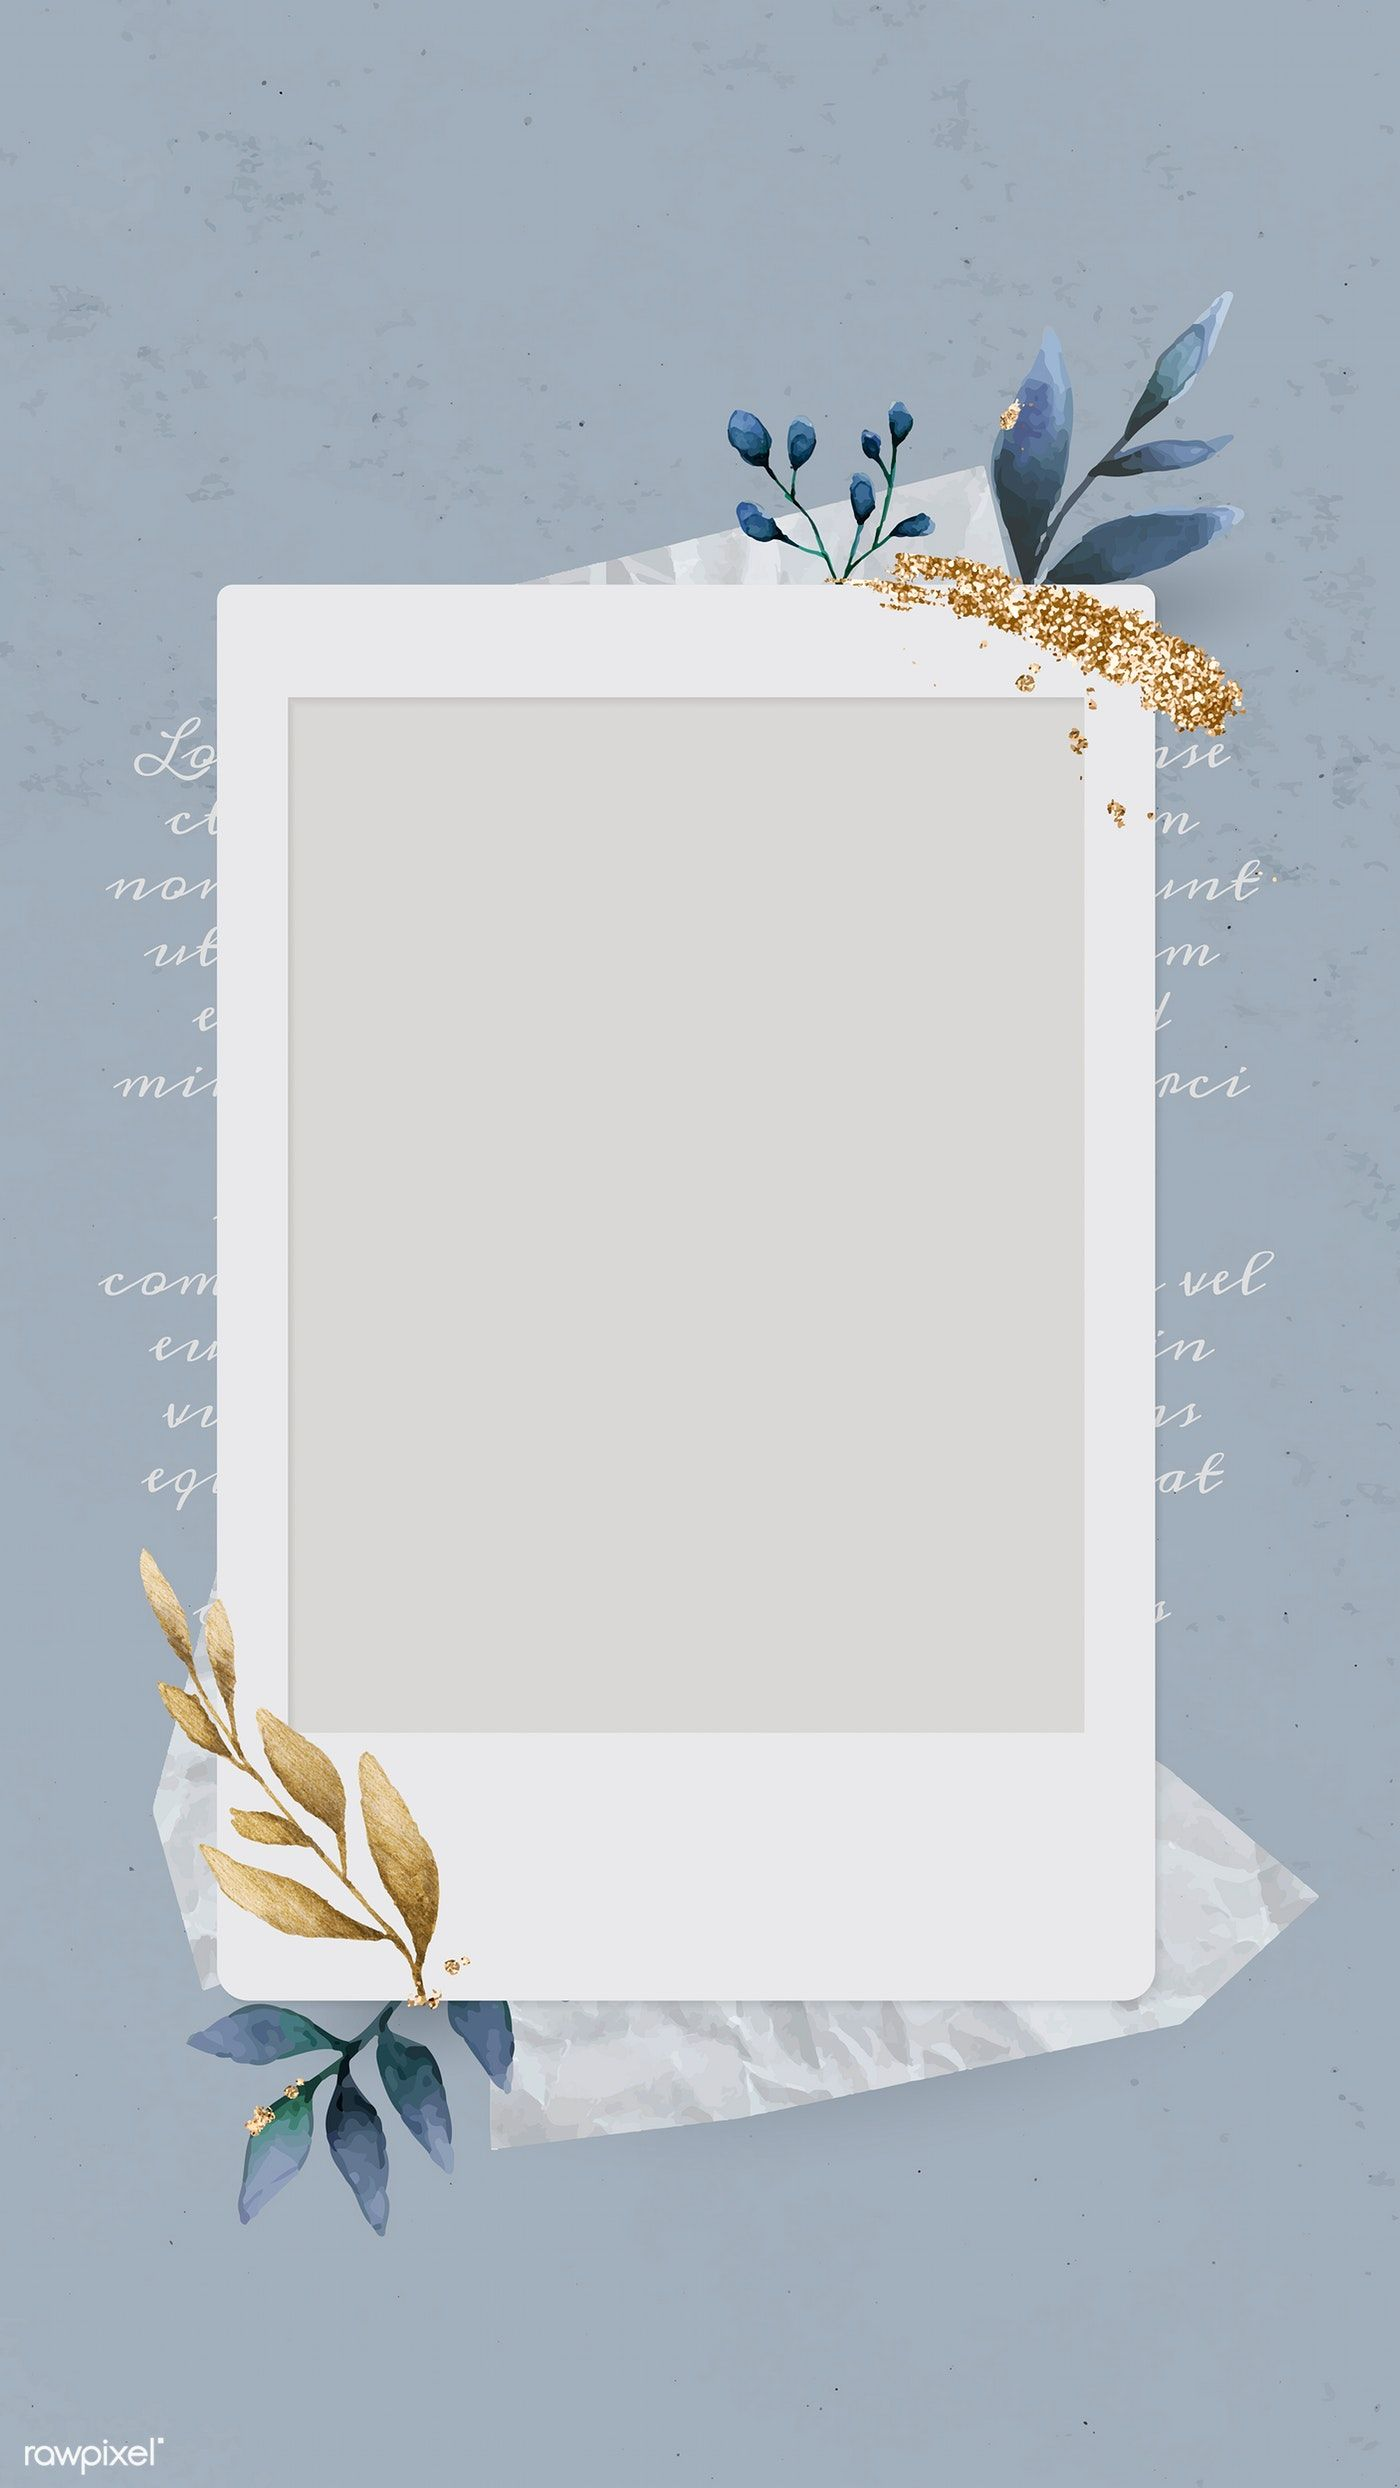 Download premium vector of Christmas decorated blank instant photo frame